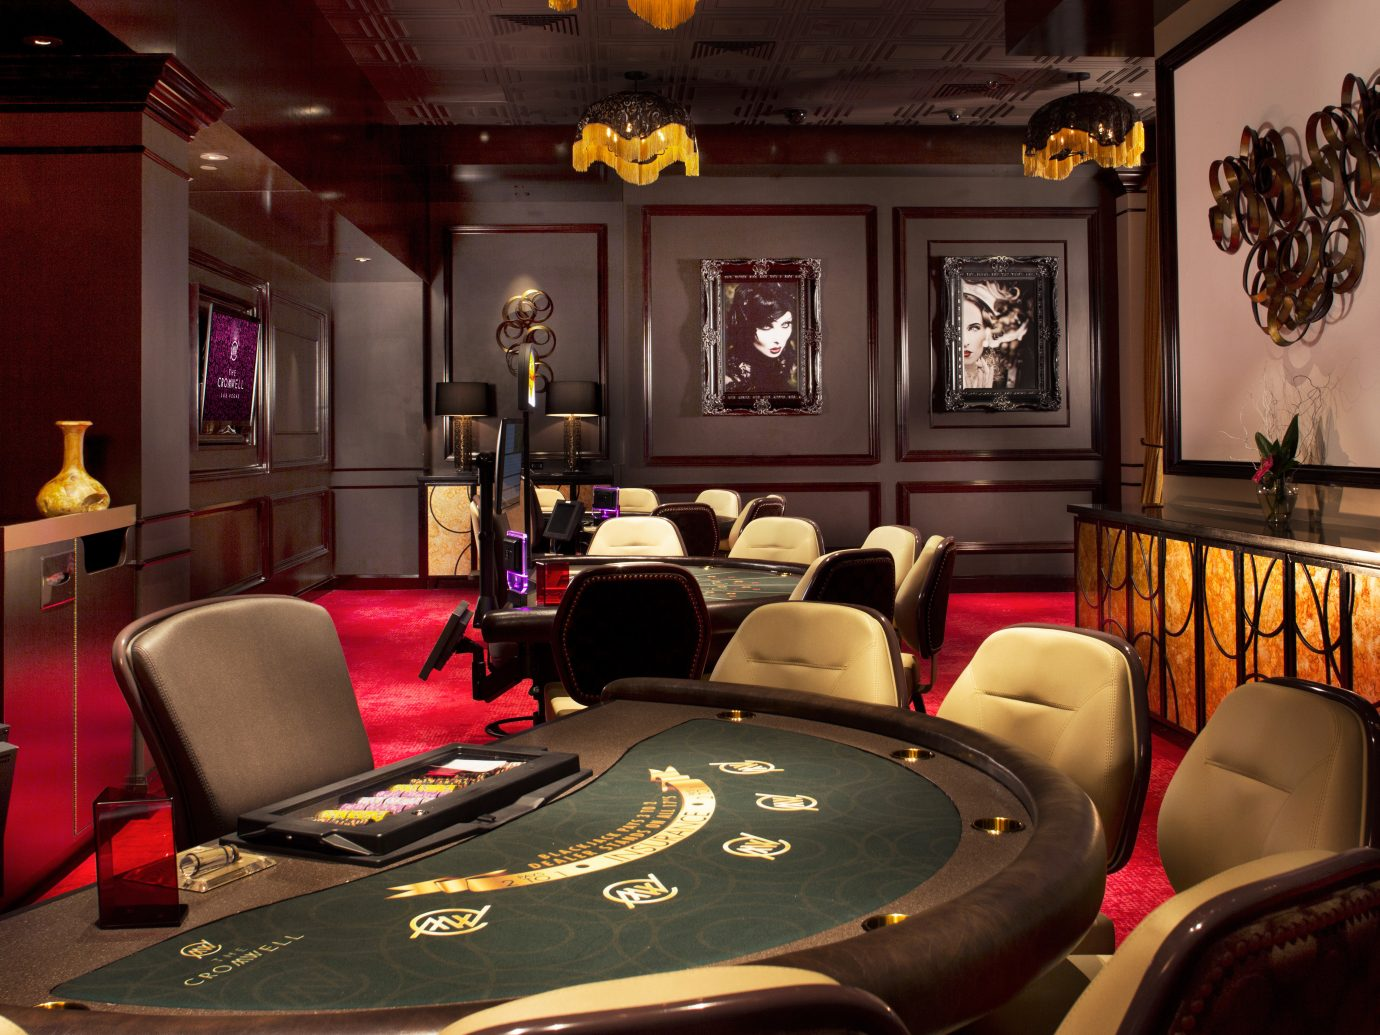 Hotels Lounge Luxury Modern indoor recreation room ceiling room billiard room interior design living room leather